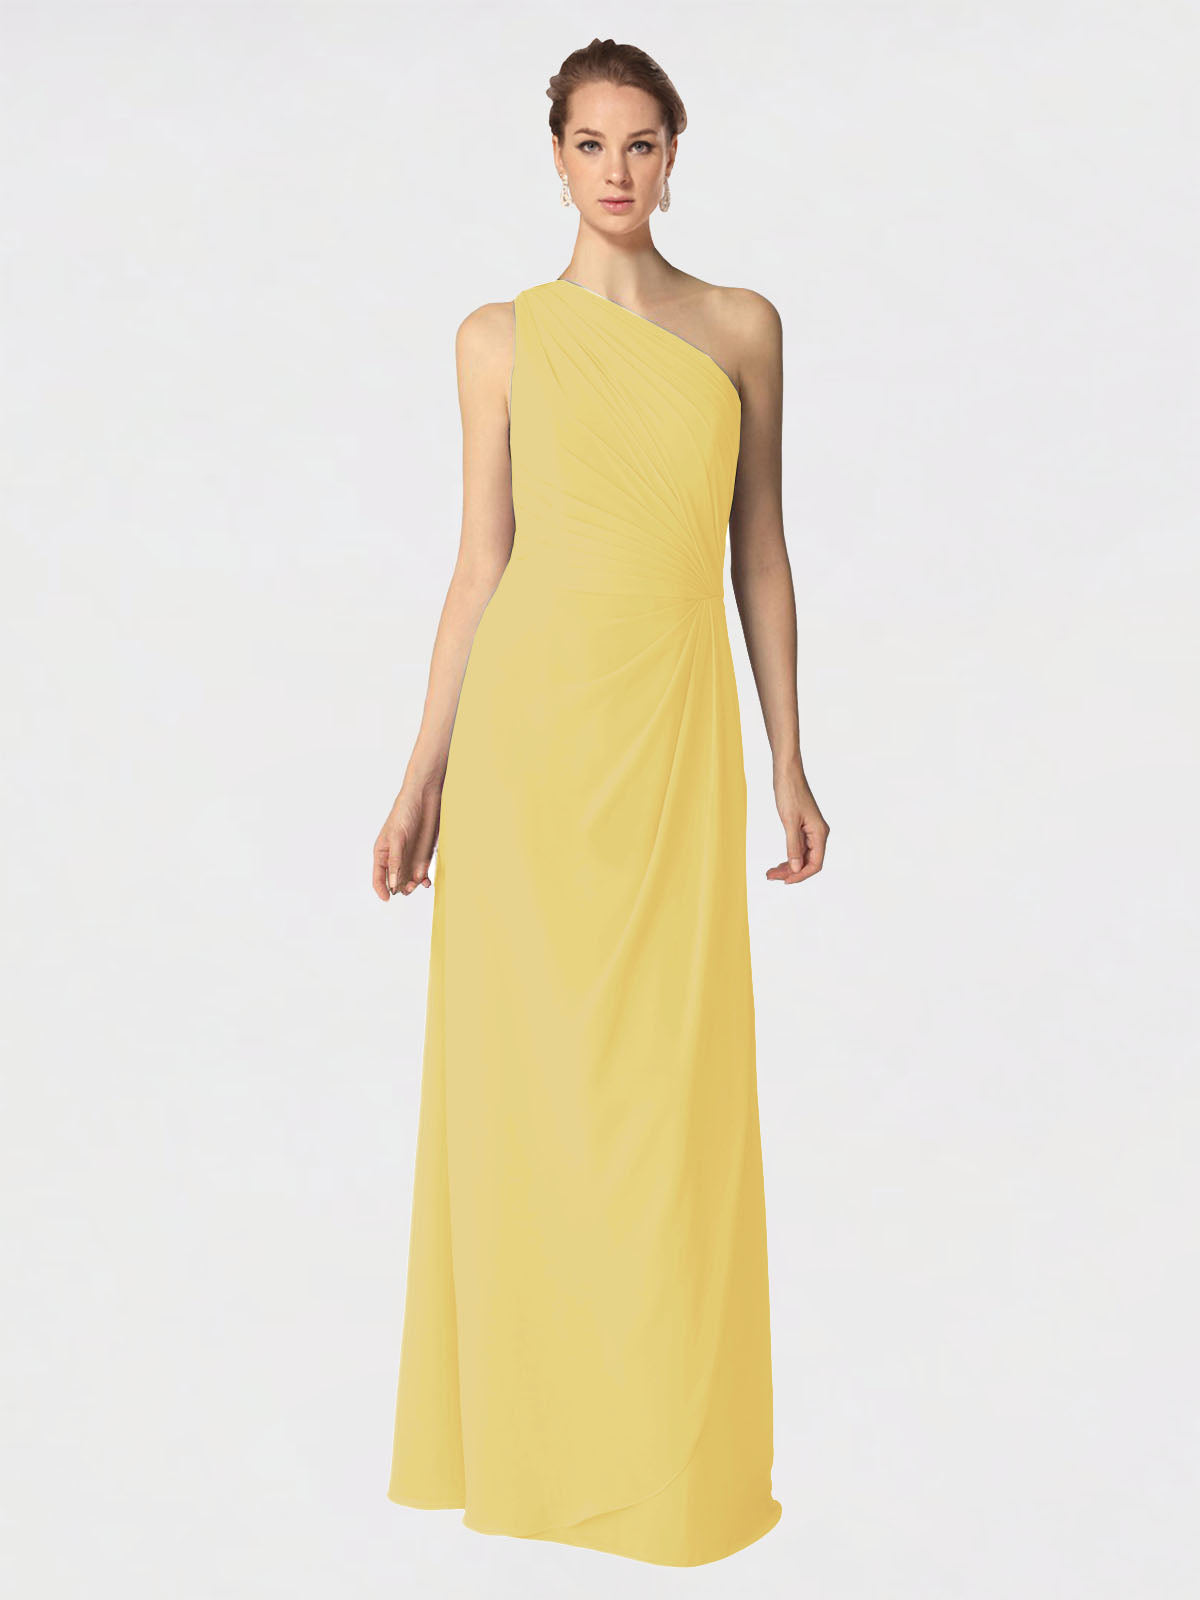 Long A-Line One Shoulder Sleeveless Daffodil Chiffon Bridesmaid Dress Aurora